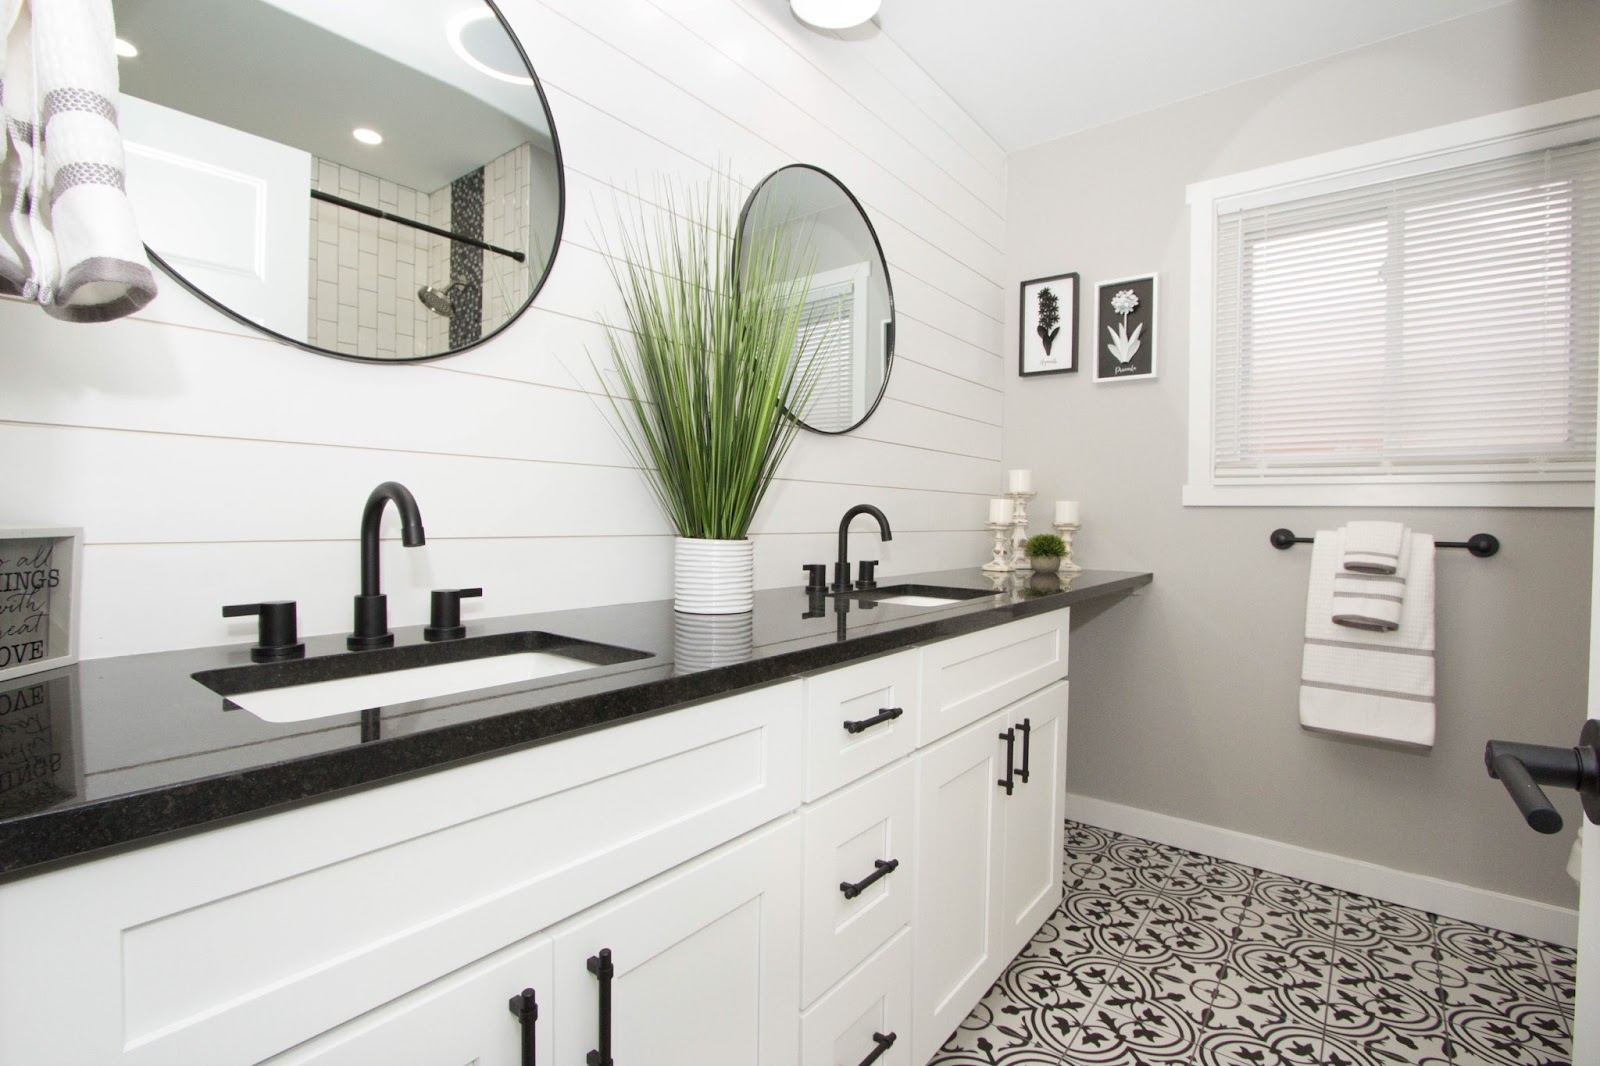 Lily Ann Cabinets shiplap bathroom design with white shaker cabinets